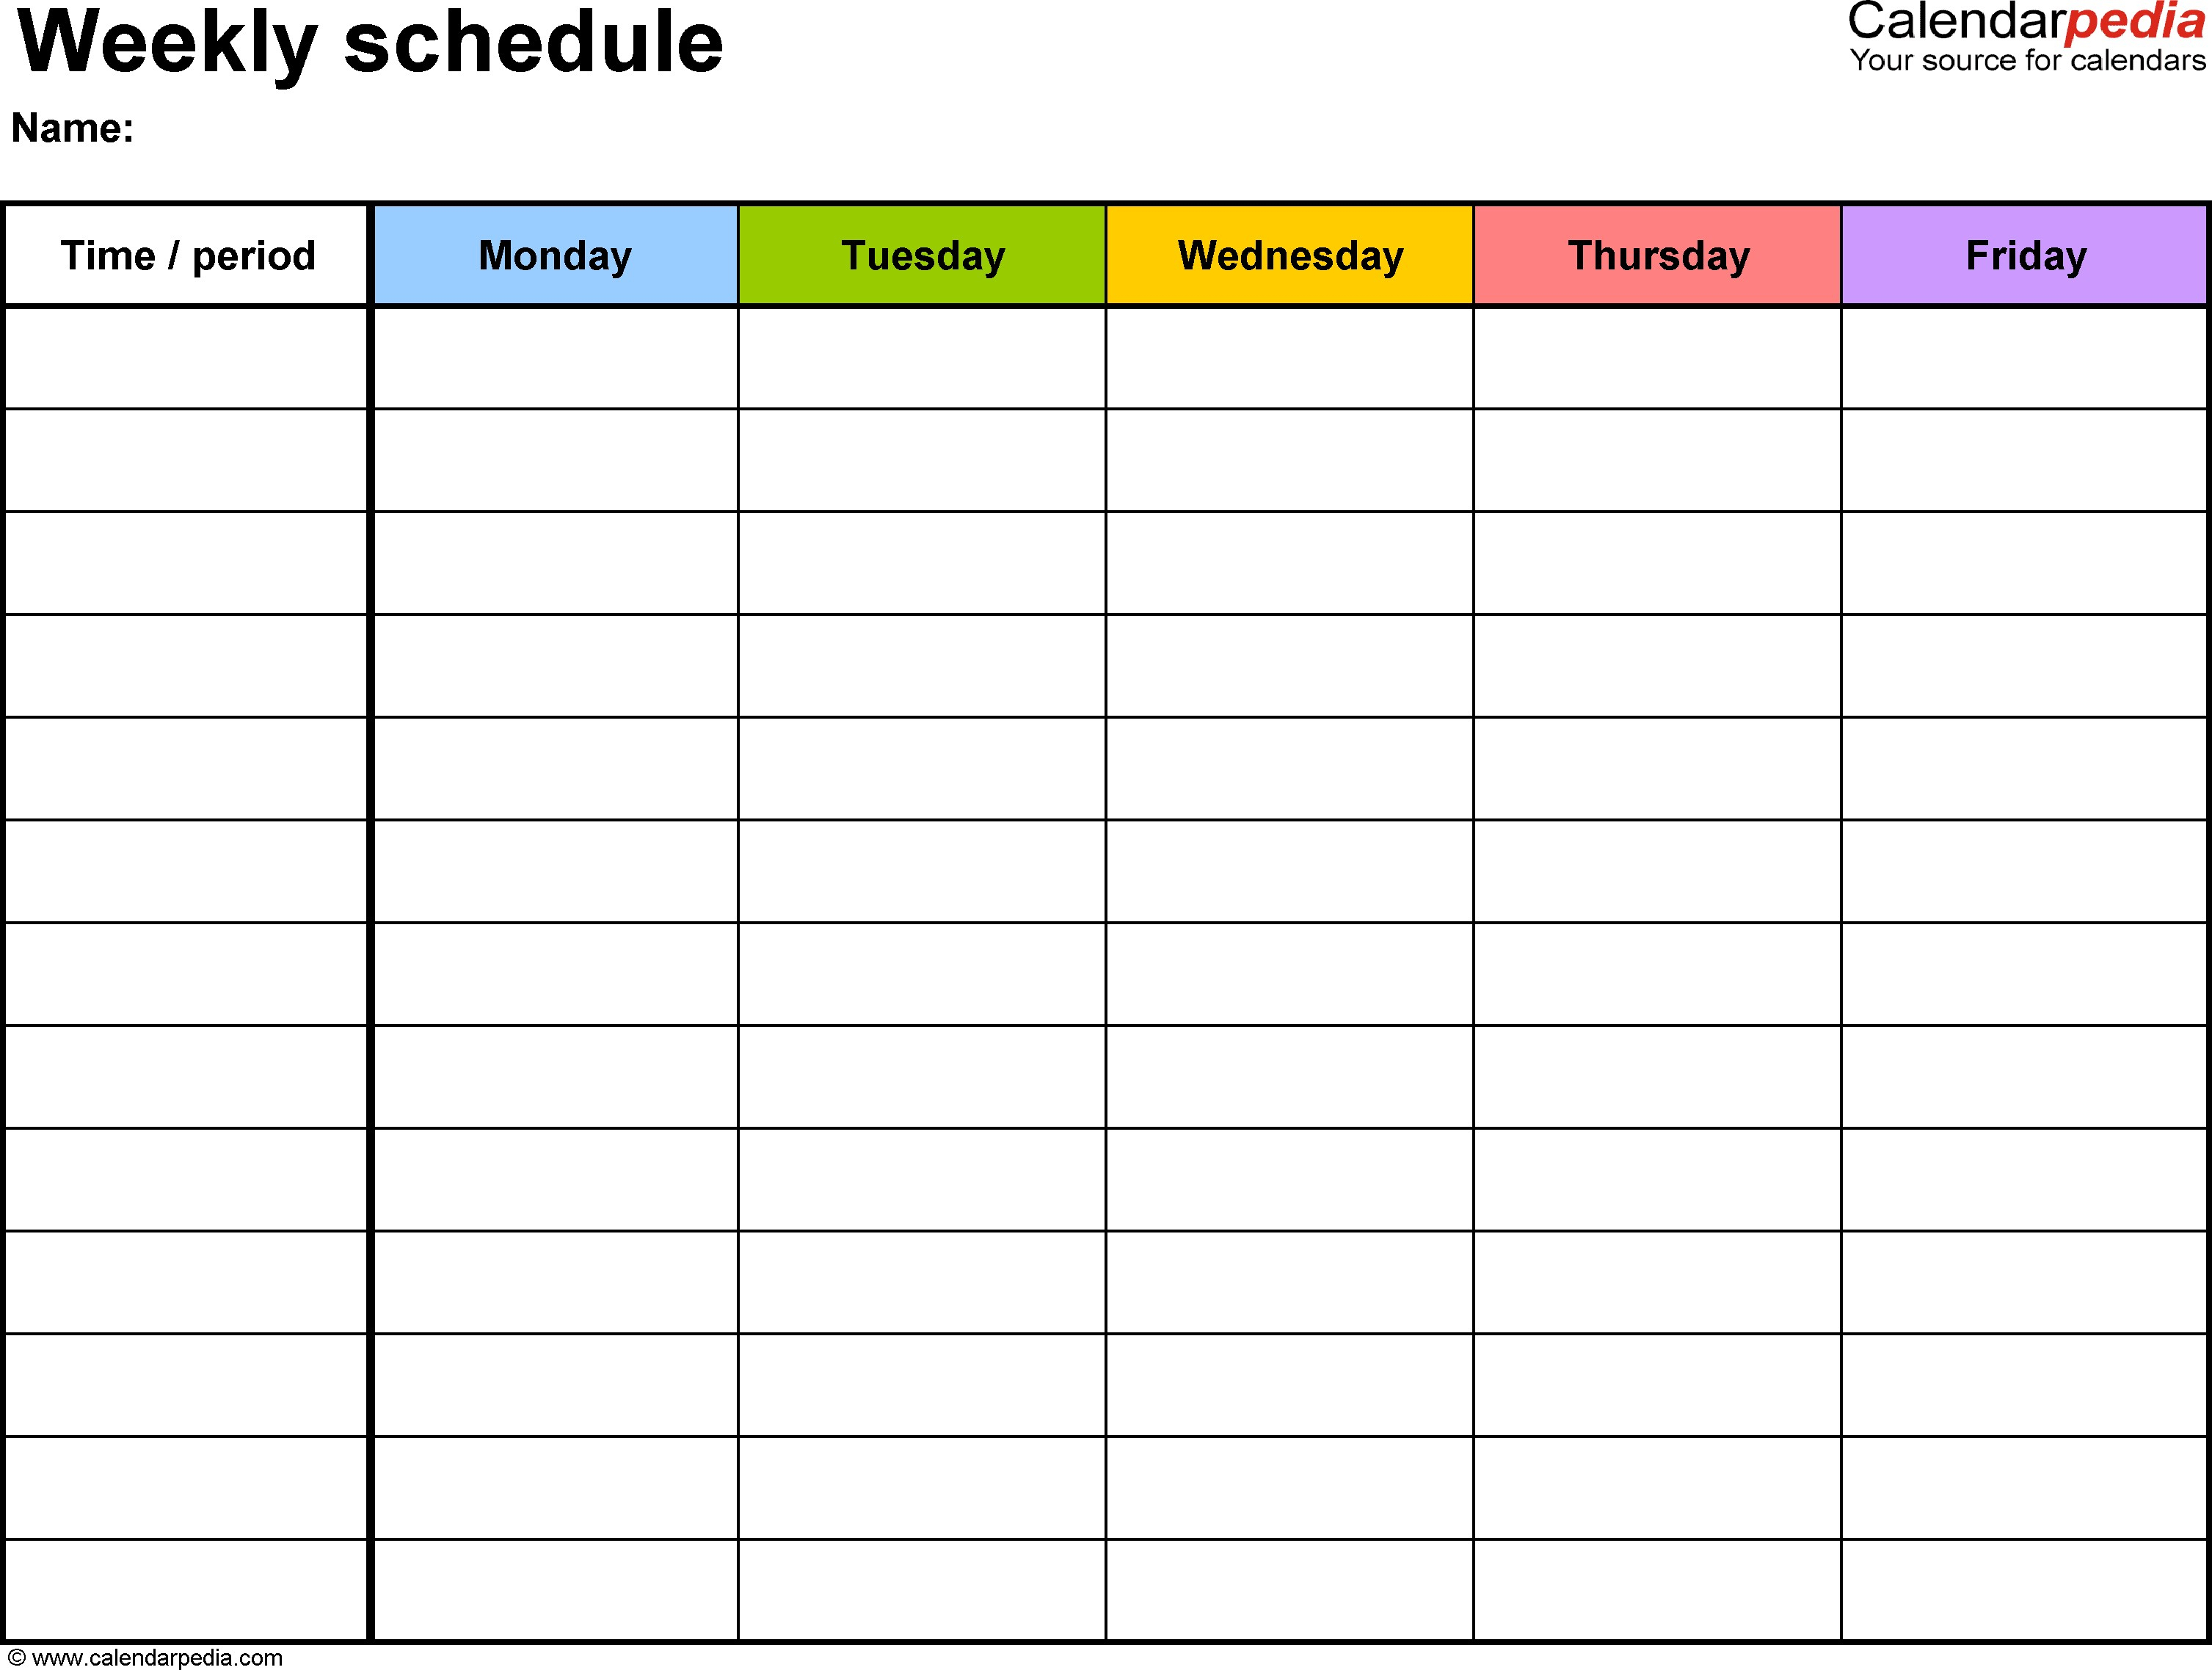 Weekly Calendar With Time Slots  Bolan.horizonconsulting.co with regard to Weekly Schedule With Time Slots